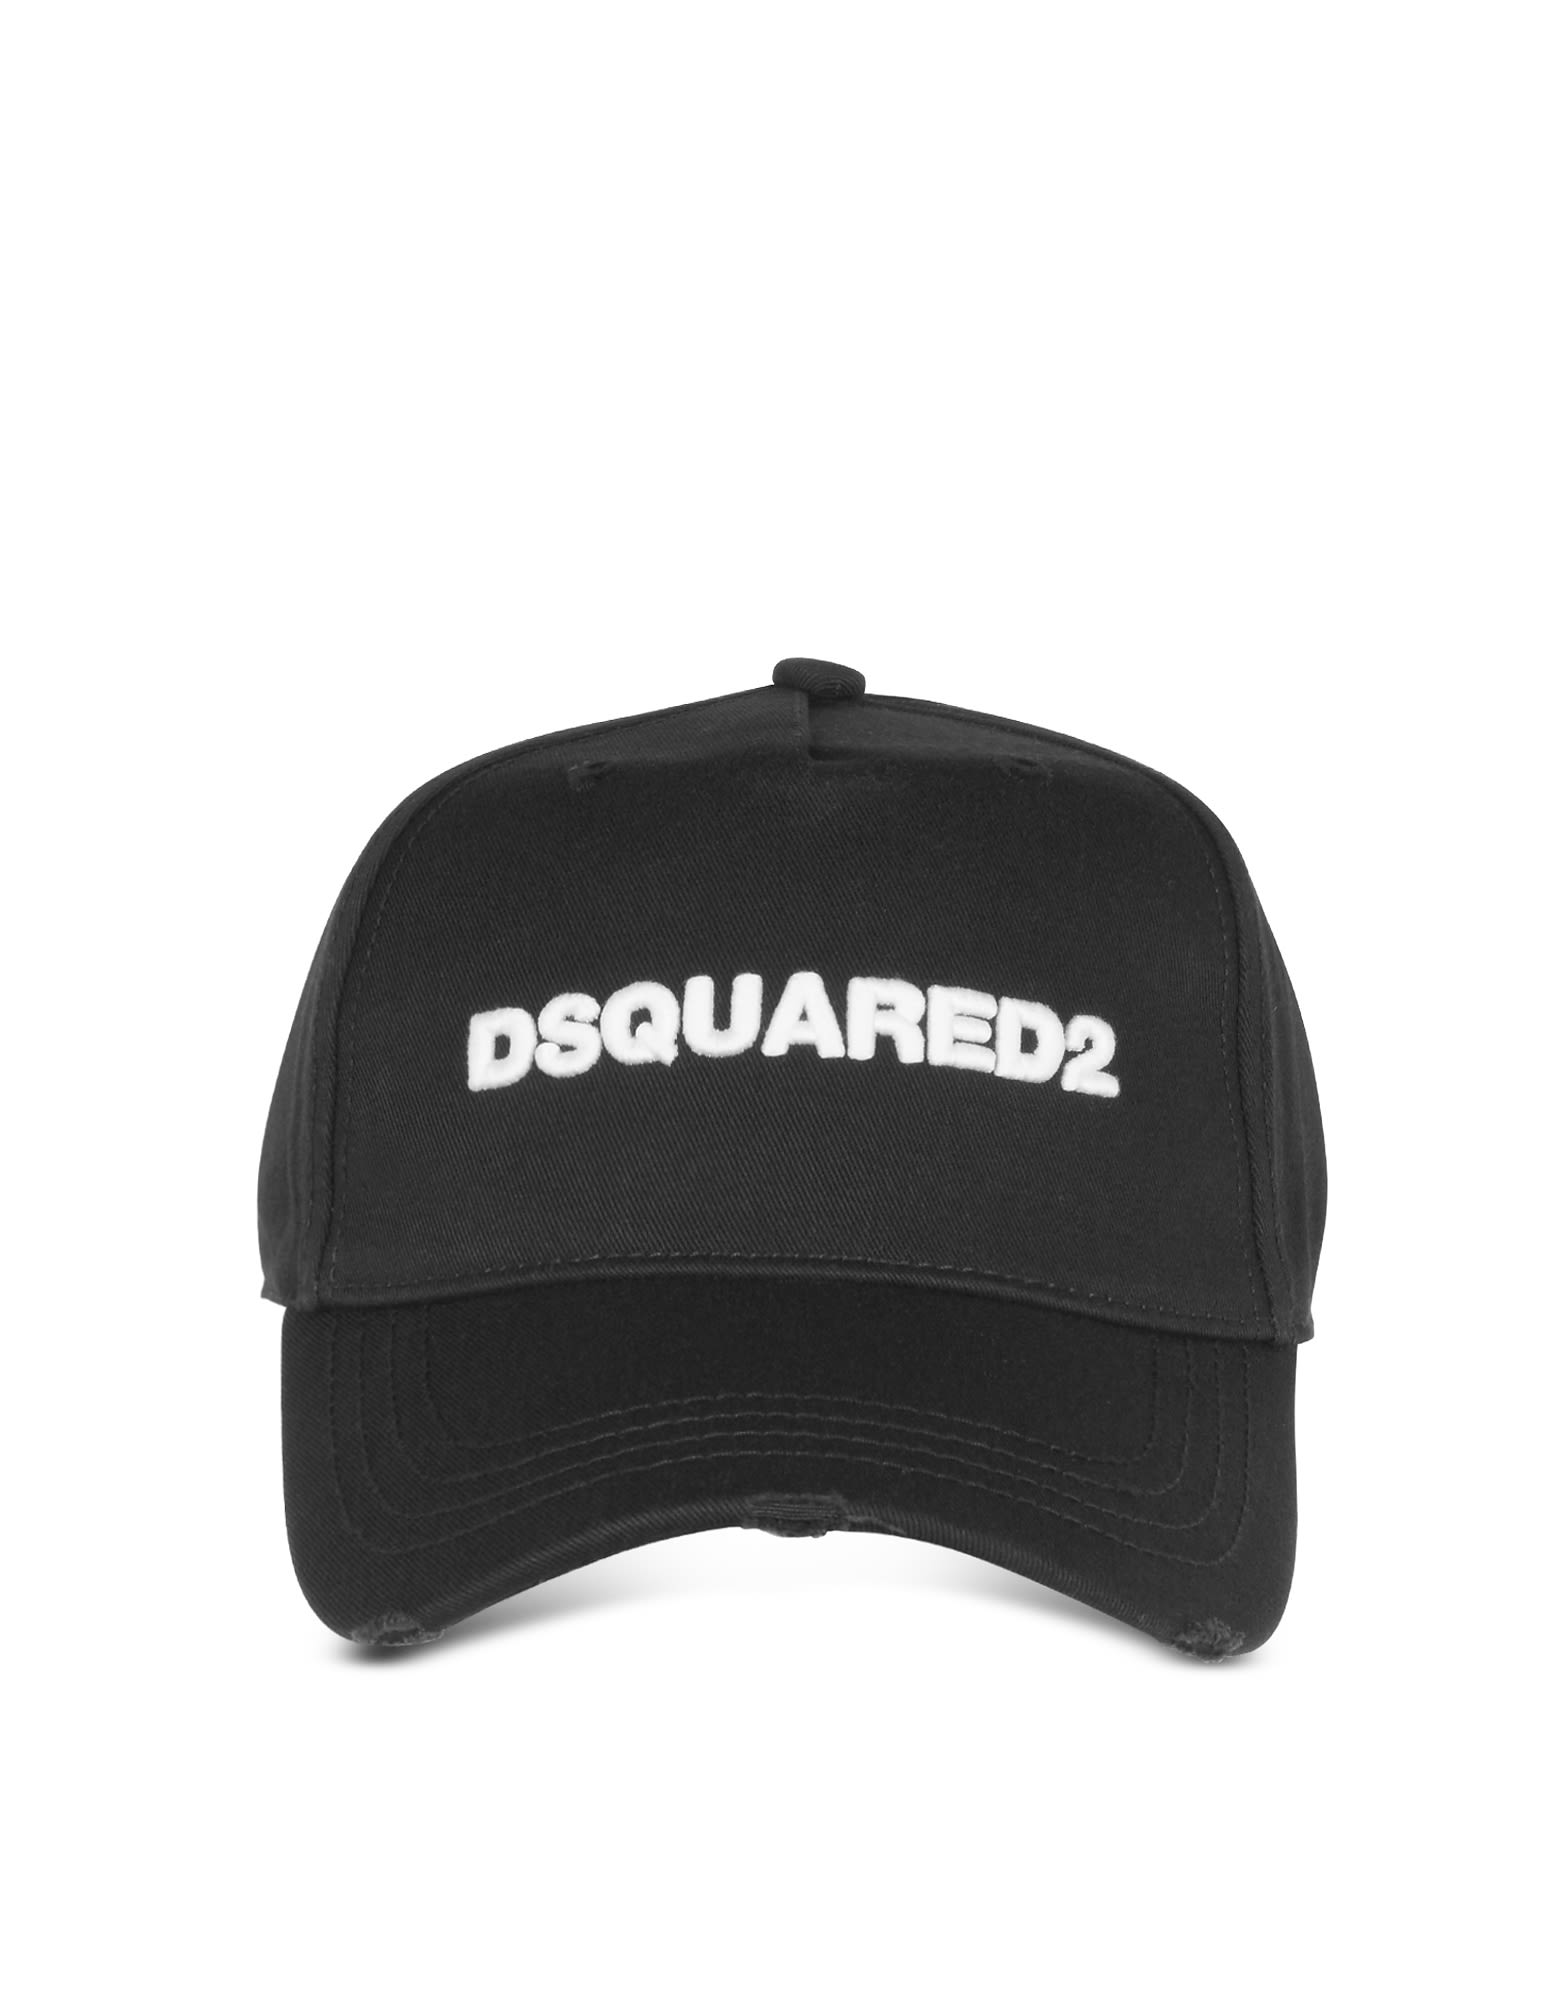 DSQUARED2 EMBROIDERED LOGO GABARDINE BASEBALL CAP